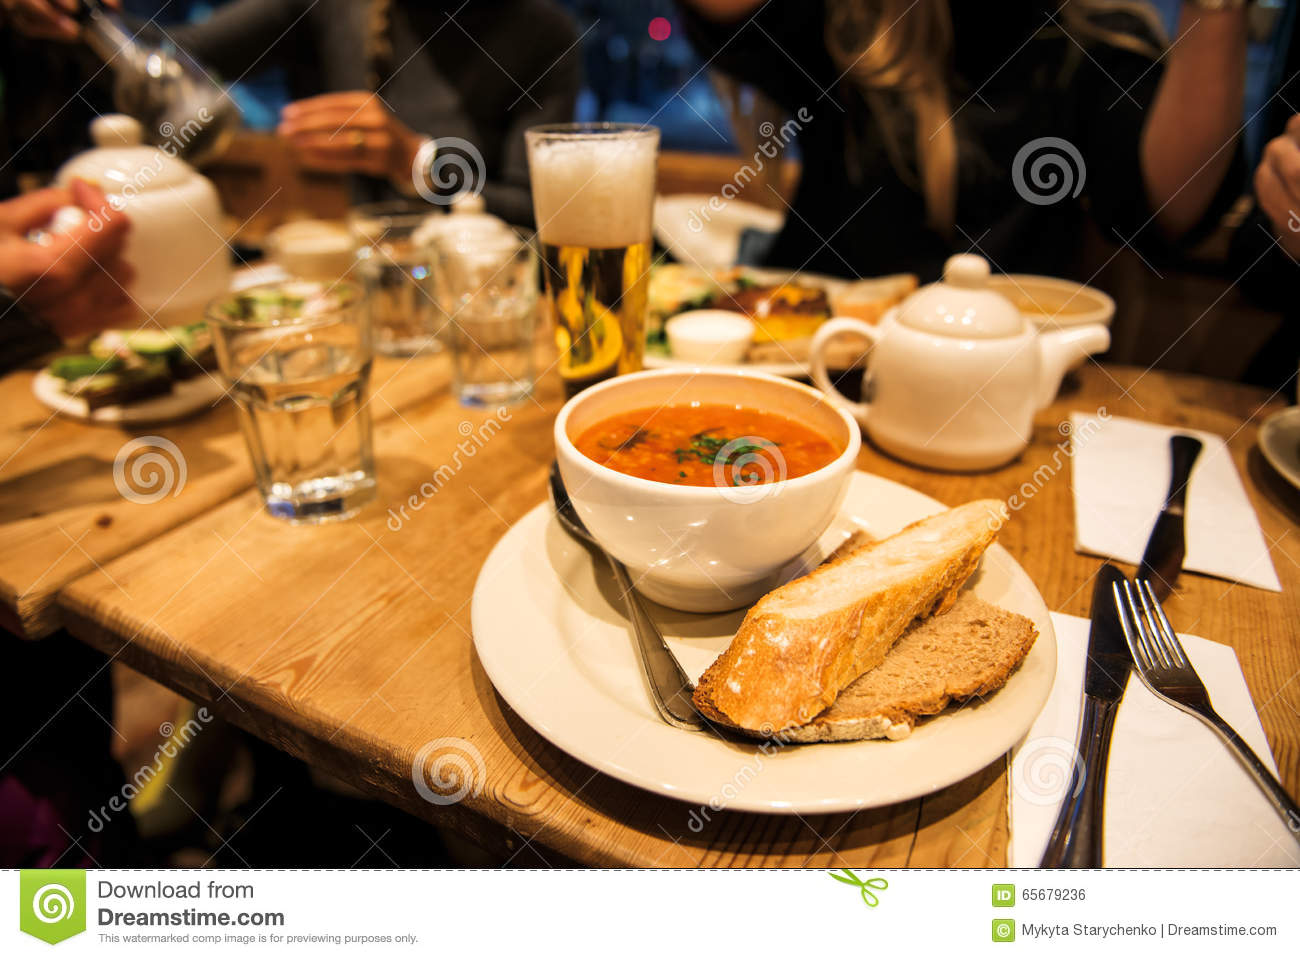 Dinner with friends in the restaurant with ministroni soup, bread, salad and beer